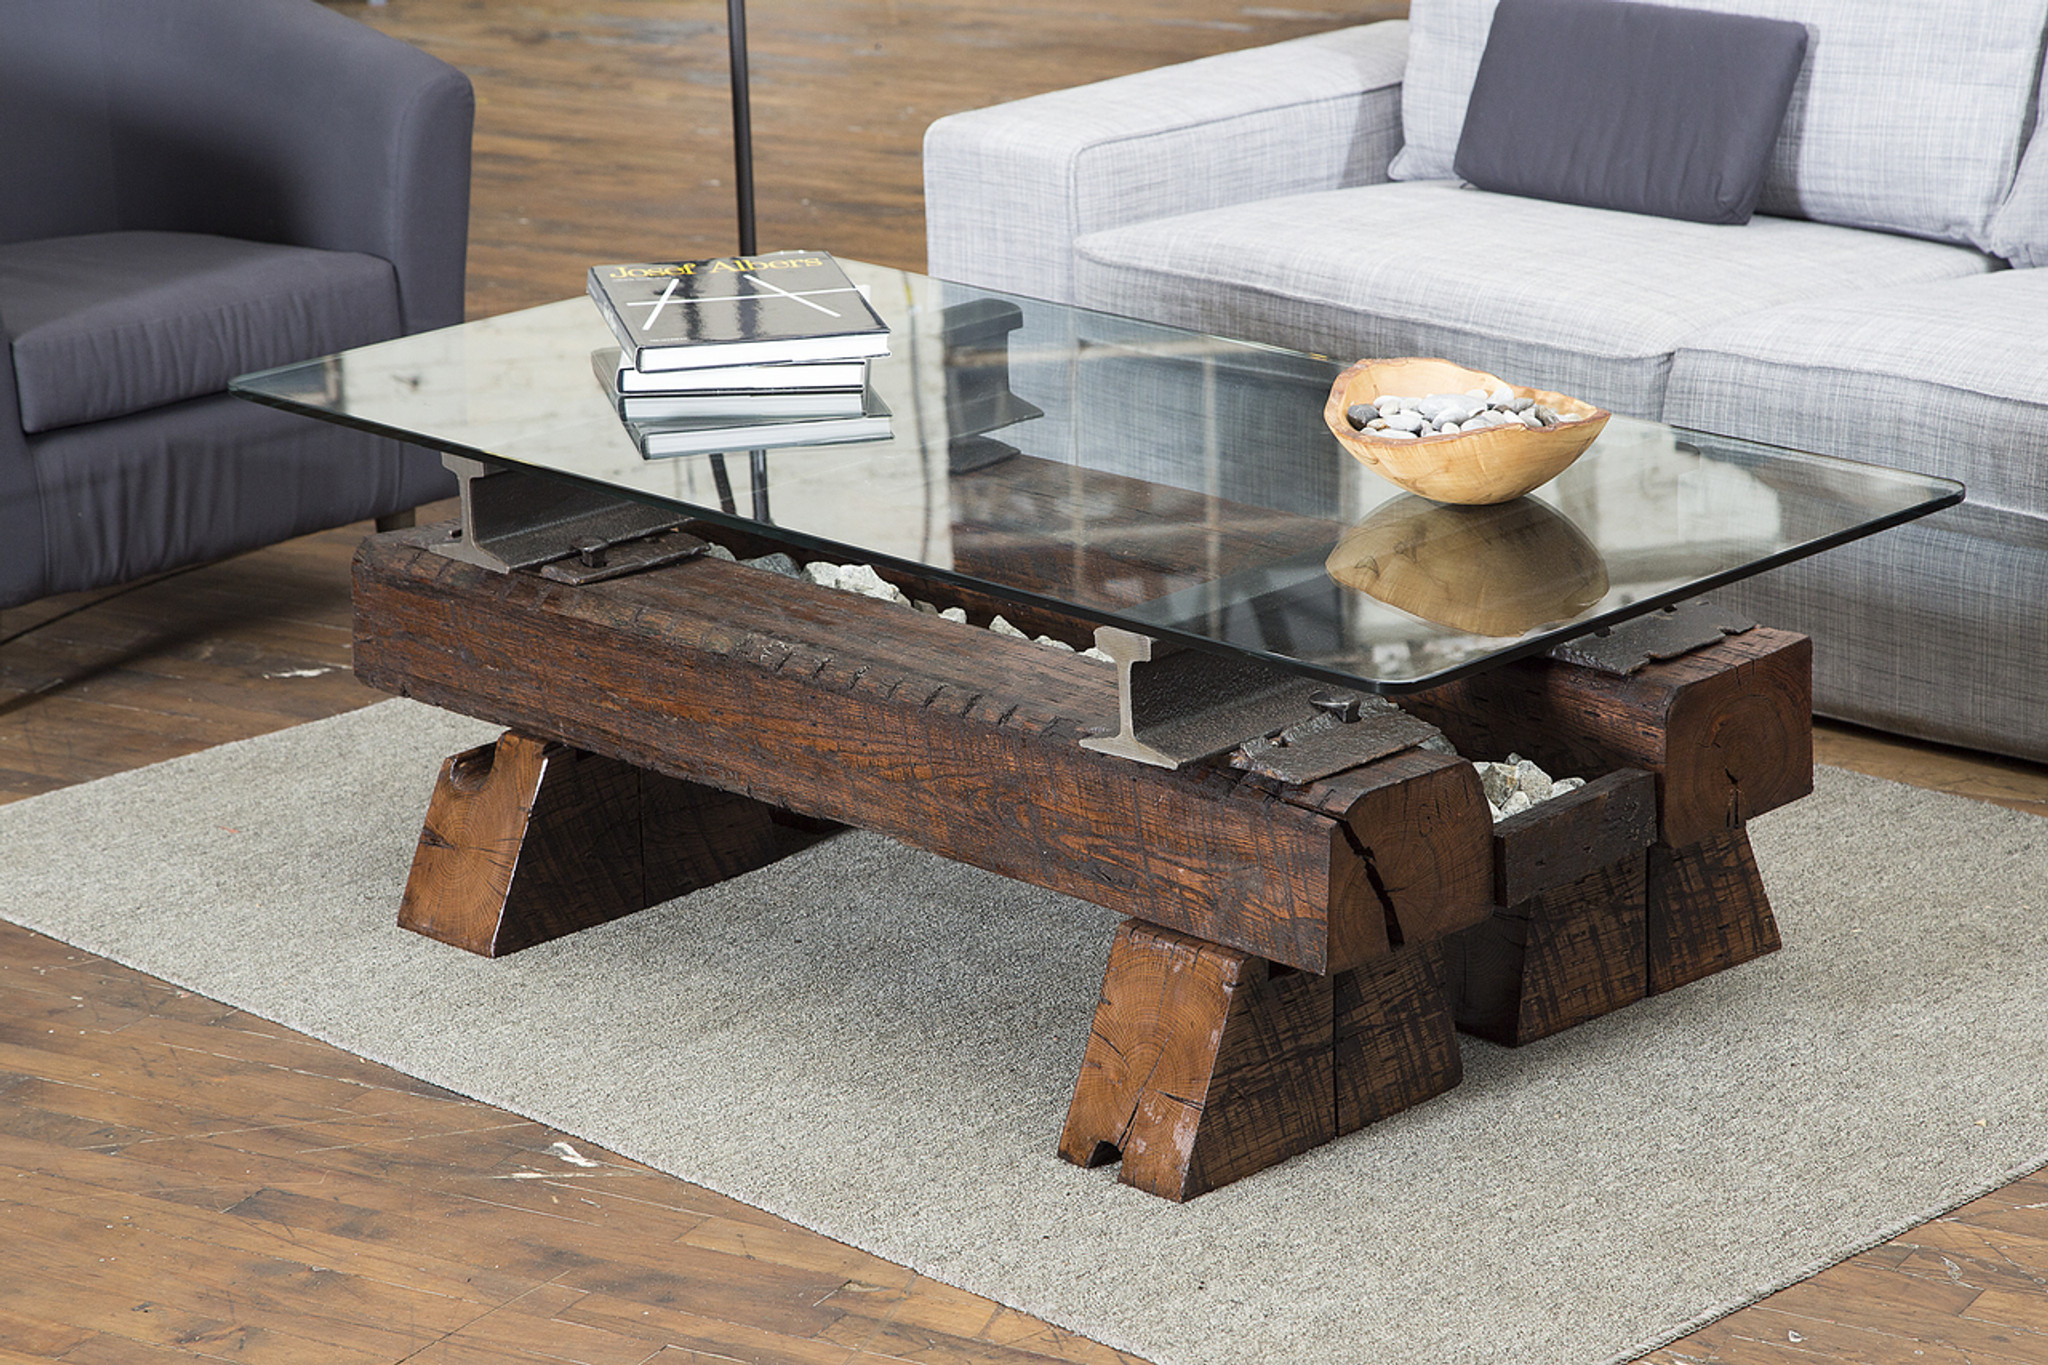 americana sofa table for modern interior styling with vintage iron hardware